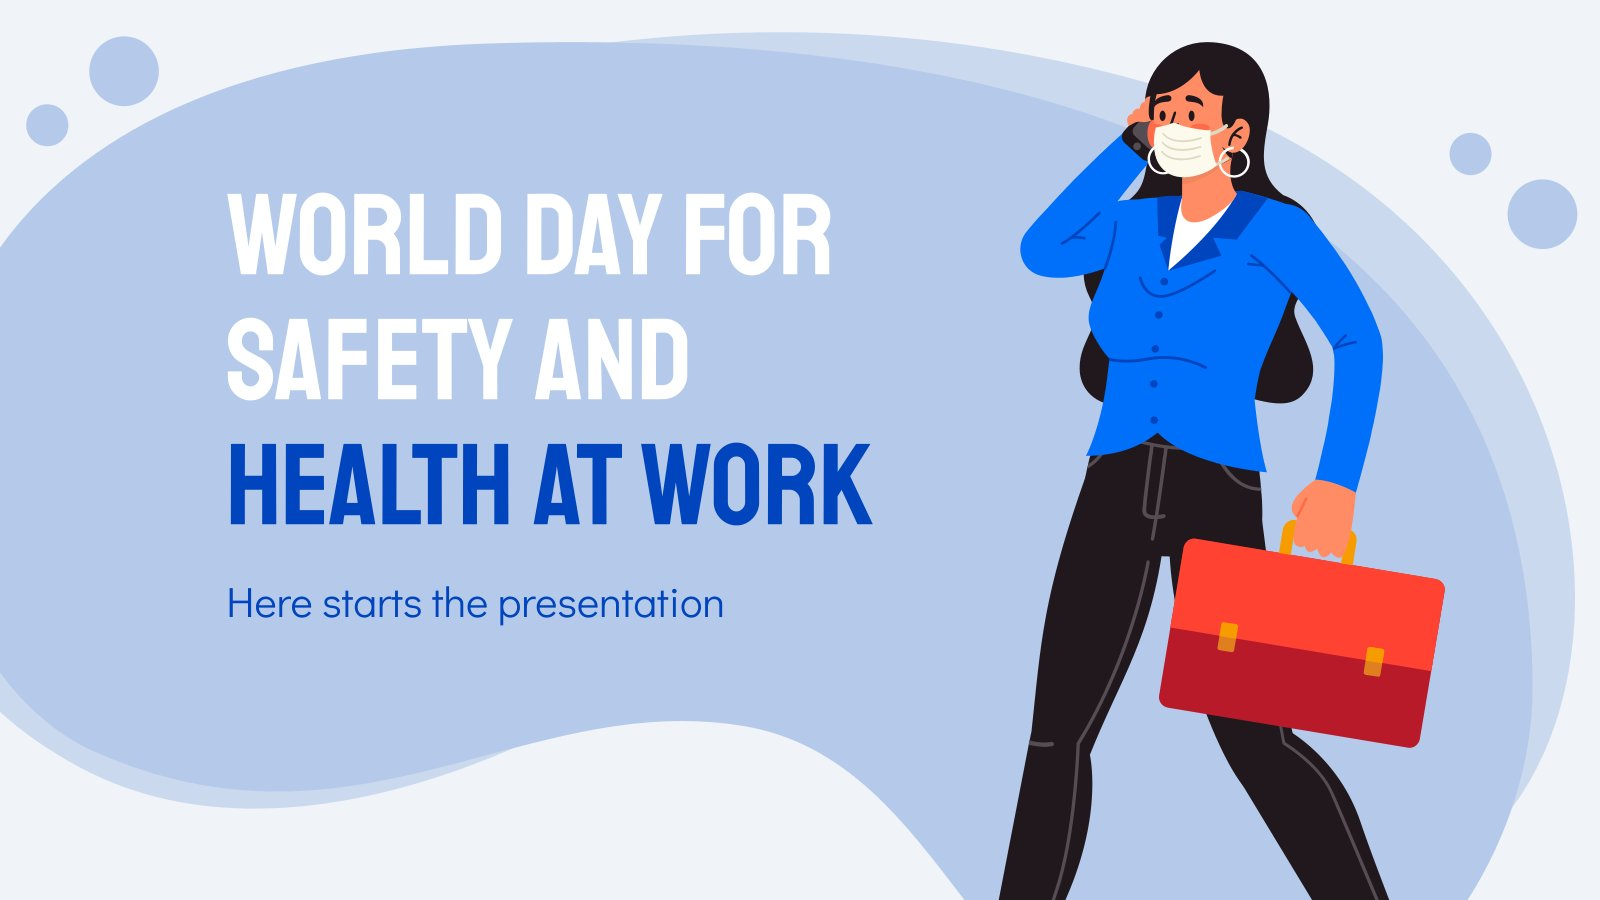 World Day for Safety and Health at Work presentation template